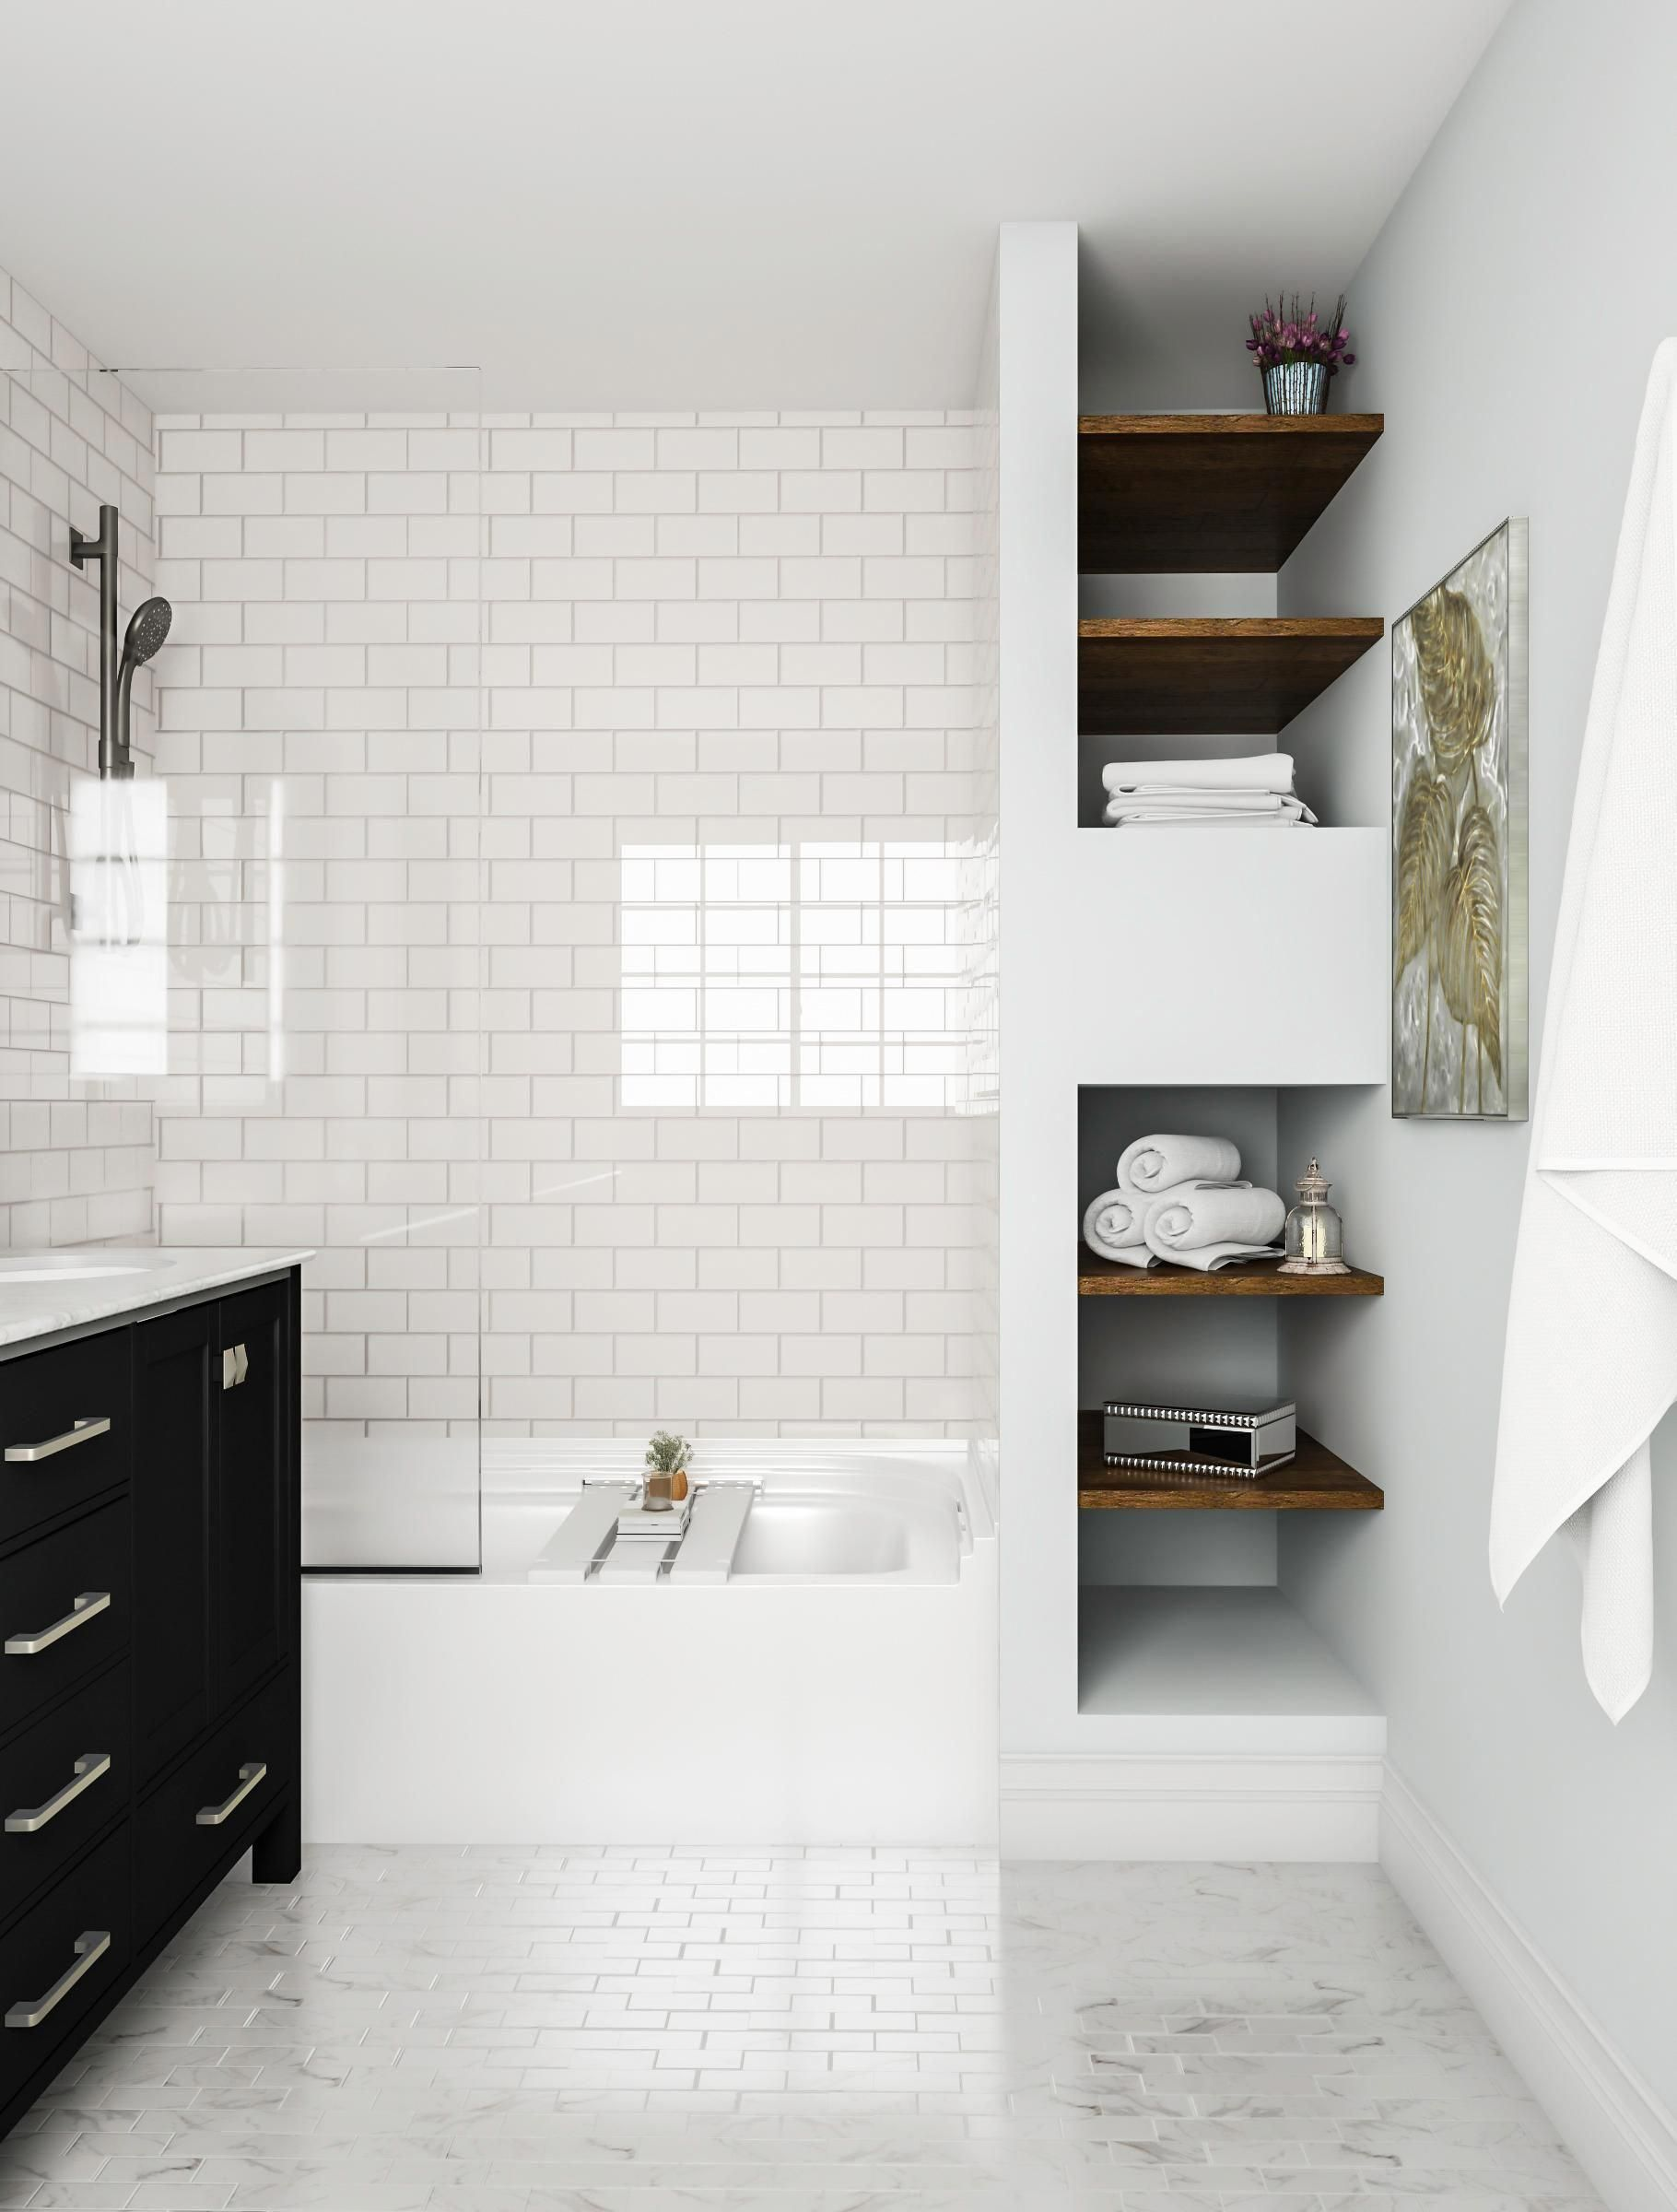 Discover the inspiration you need for your bathroom